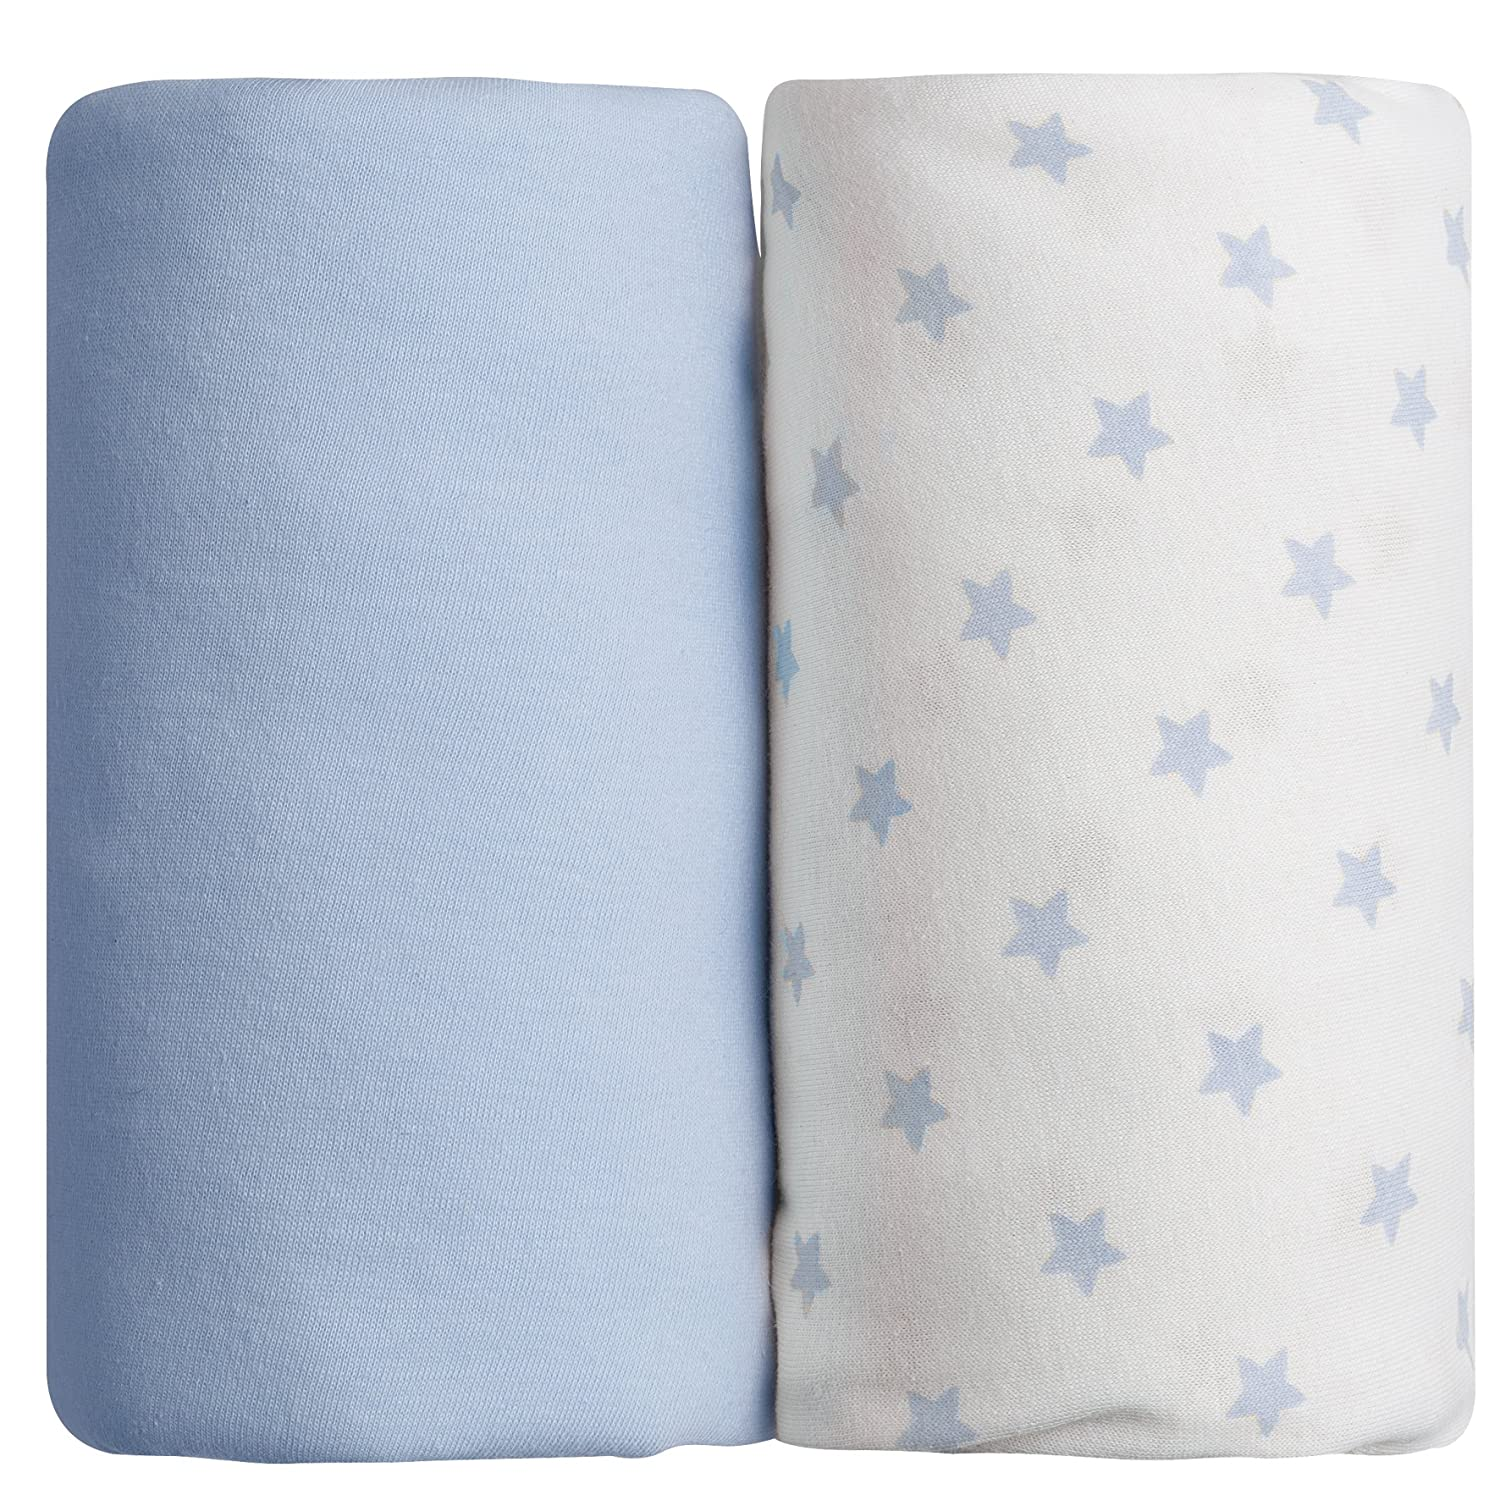 Babycalin Fitted Sheets (Set of 2Blue 60x 120cm BBC413807